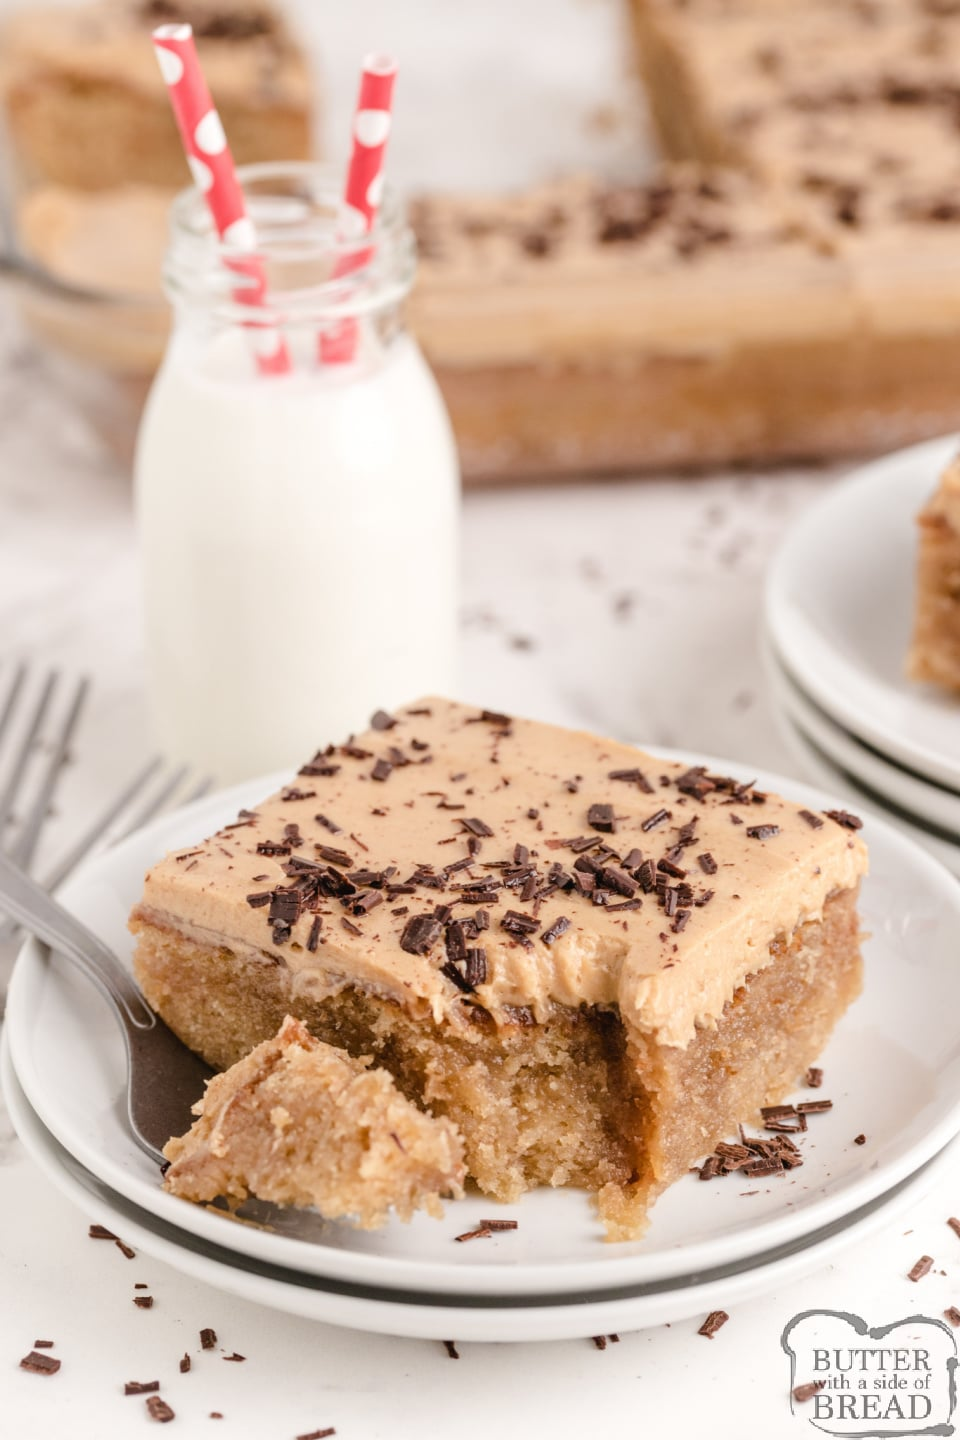 Peanut Butter Poke Cake made from scratch with a delicious peanut butter drizzle and a light peanut butter frosting on top! Tons of peanut butter flavor in this amazing poke cake recipe!